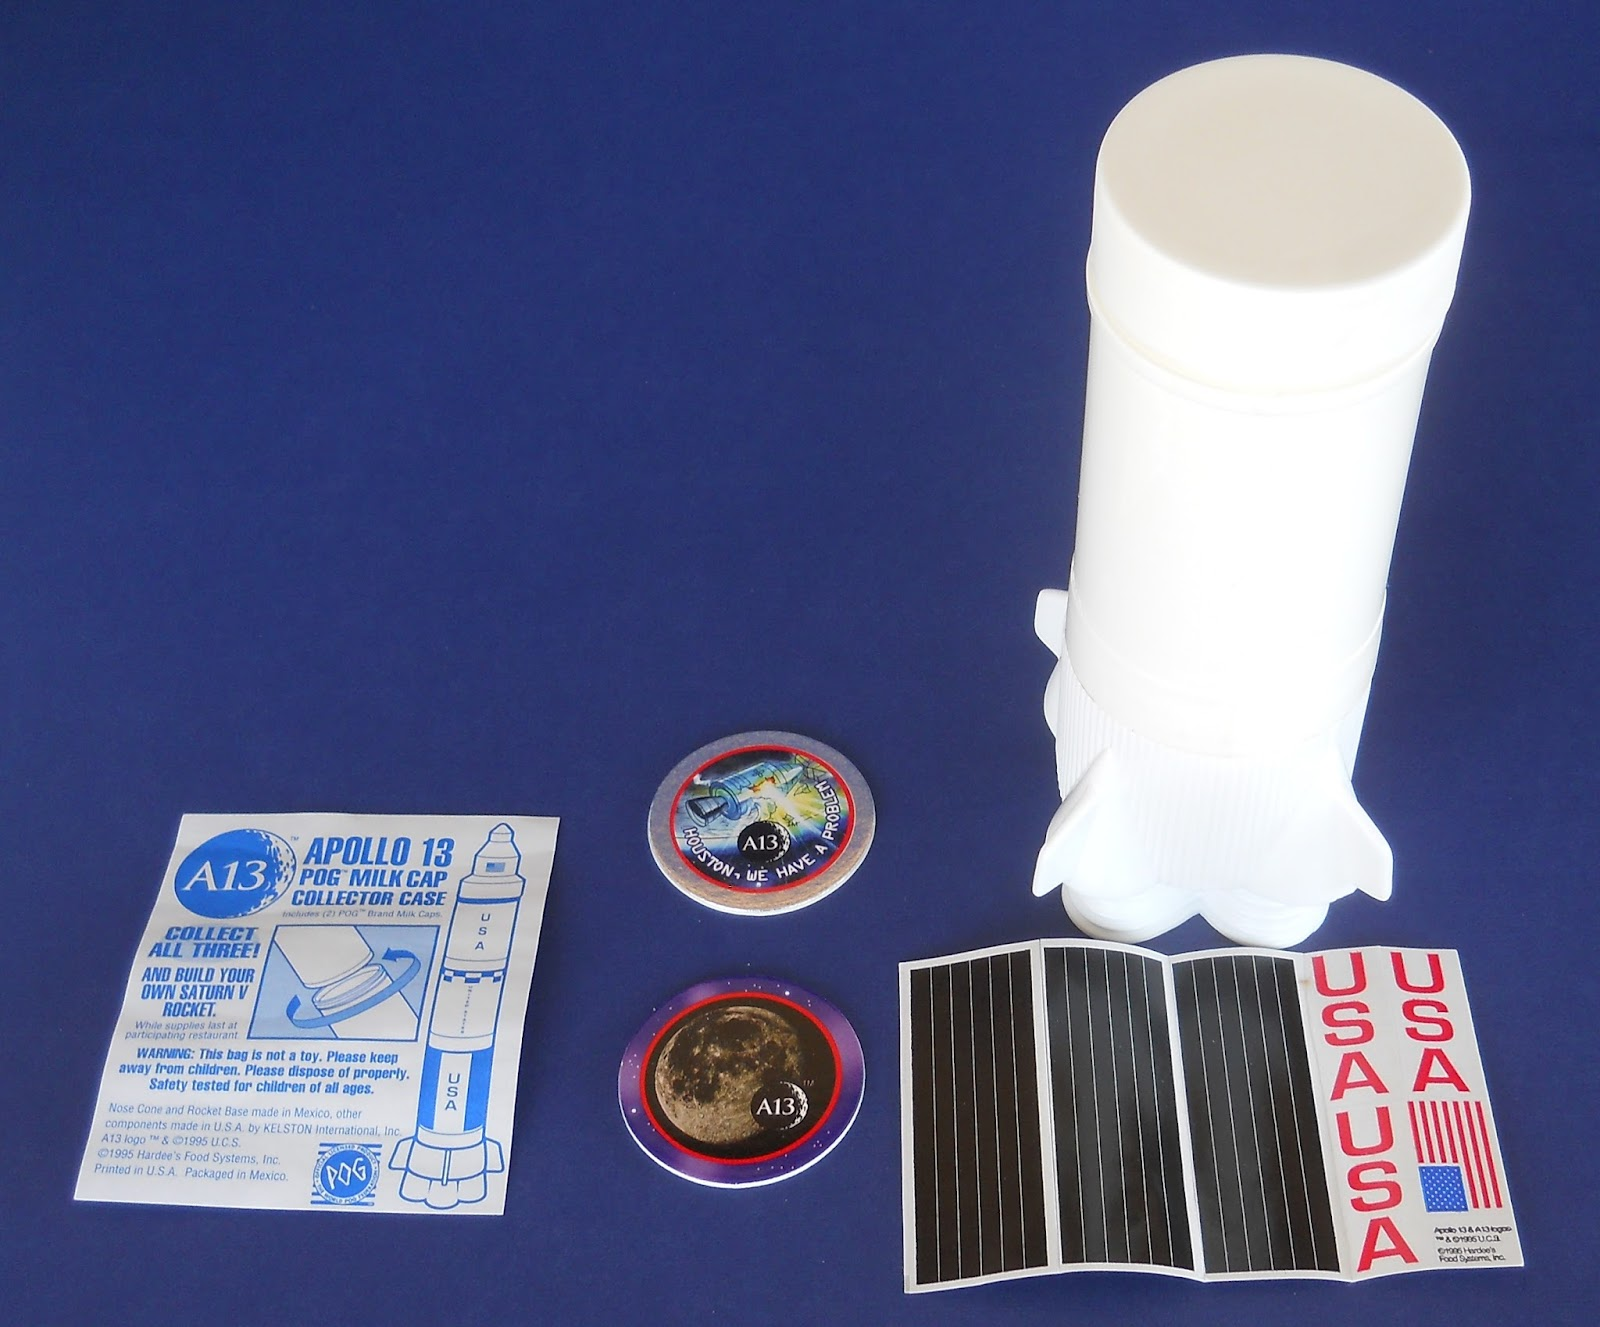 Toys and Stuff: Hardee's Apollo 13 Pog Collector Case 1995 - Stage 1